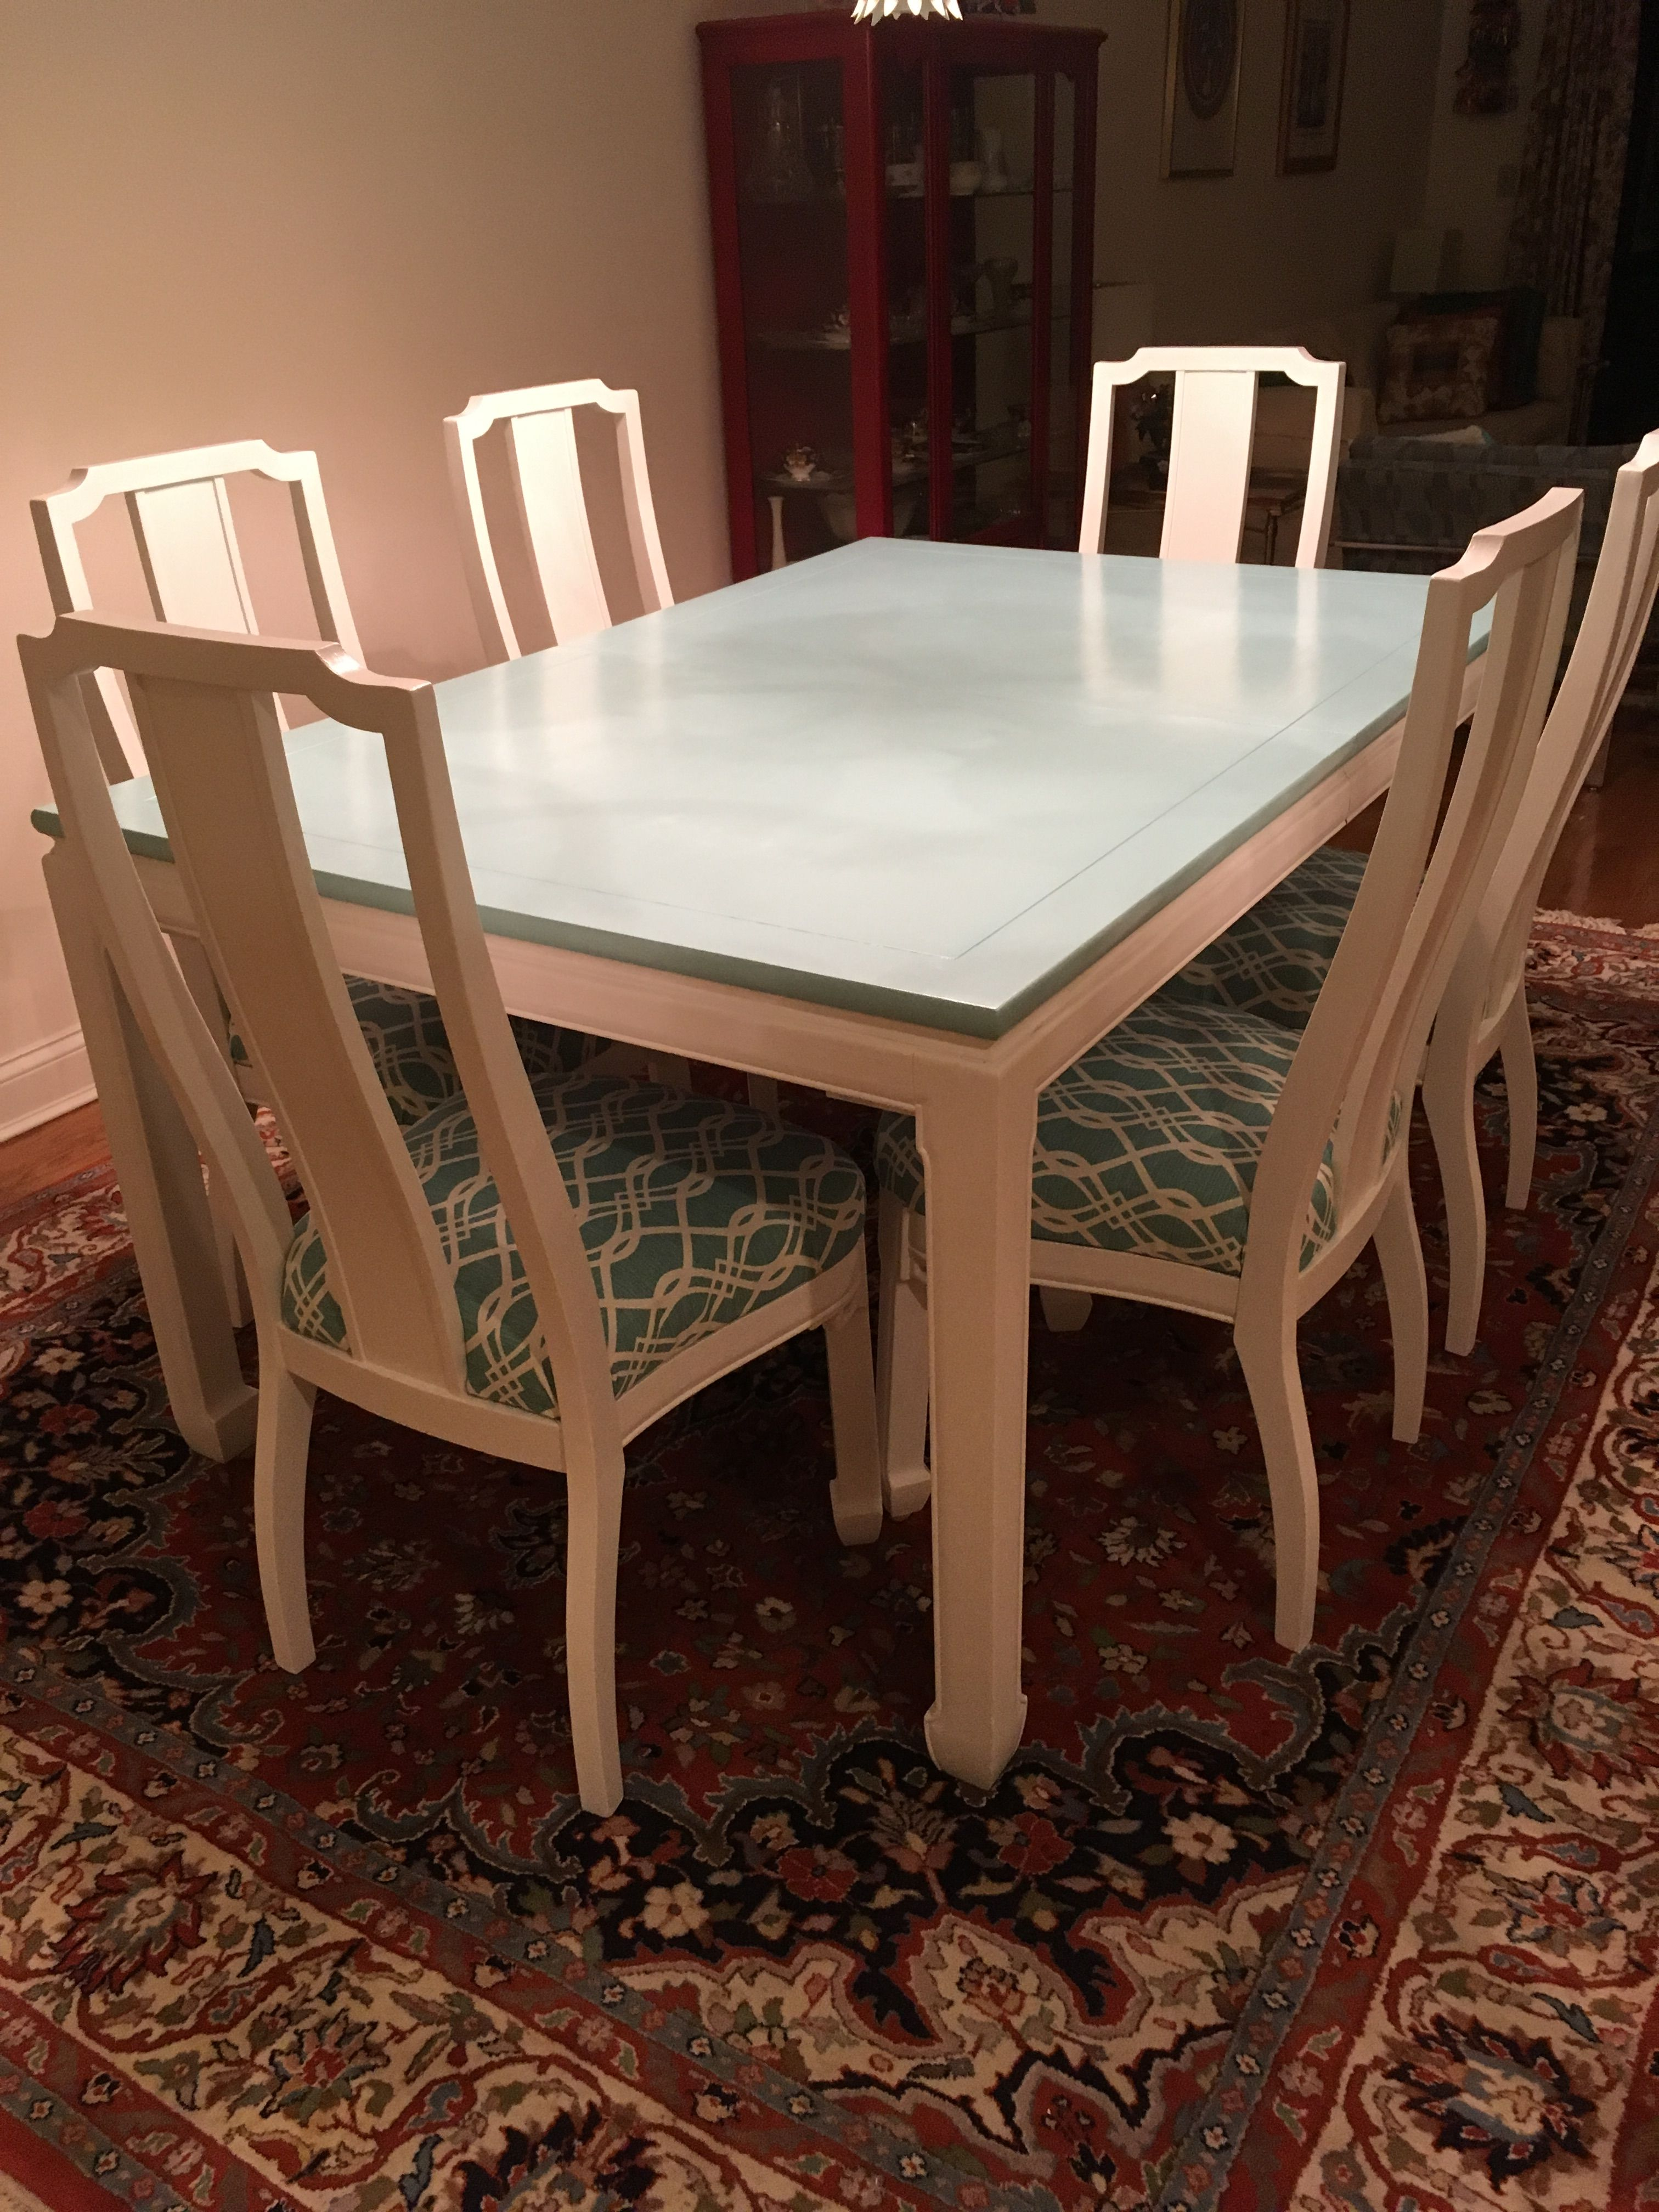 dark mahogany furniture. Dark Mahogany Furniture. Vintage Dining Room Set With Six Chairs. Wood Originally Furniture I